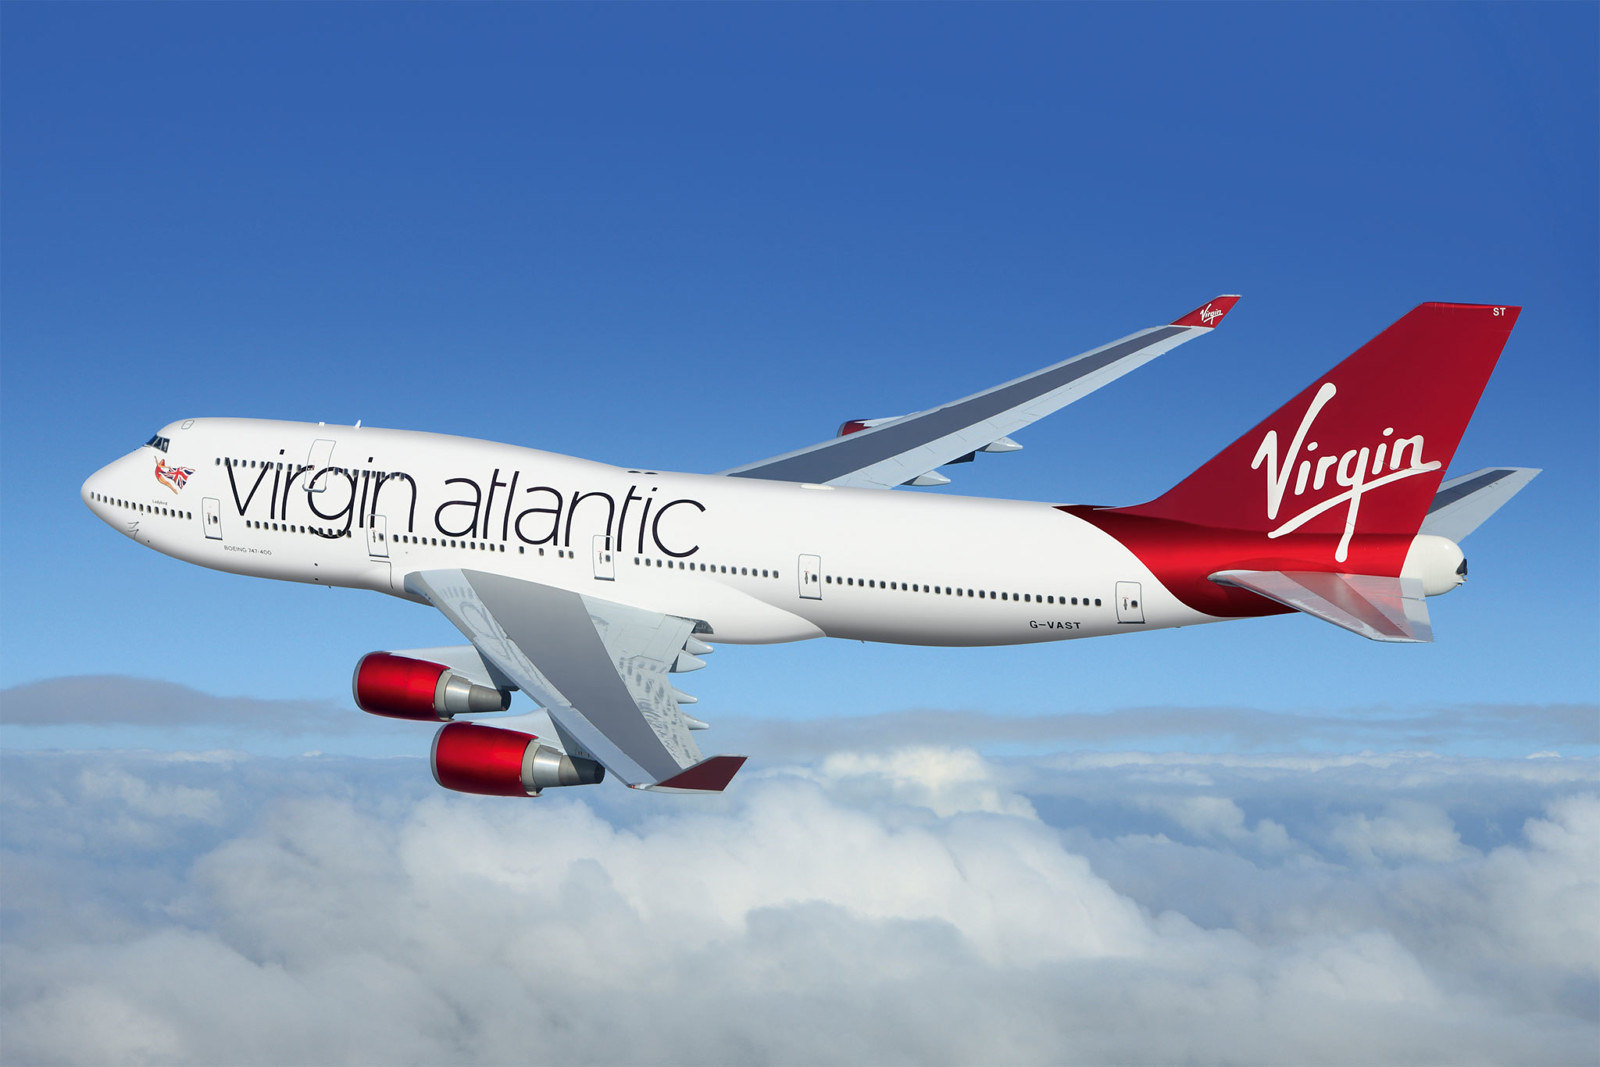 virgin-atlantic-plane2